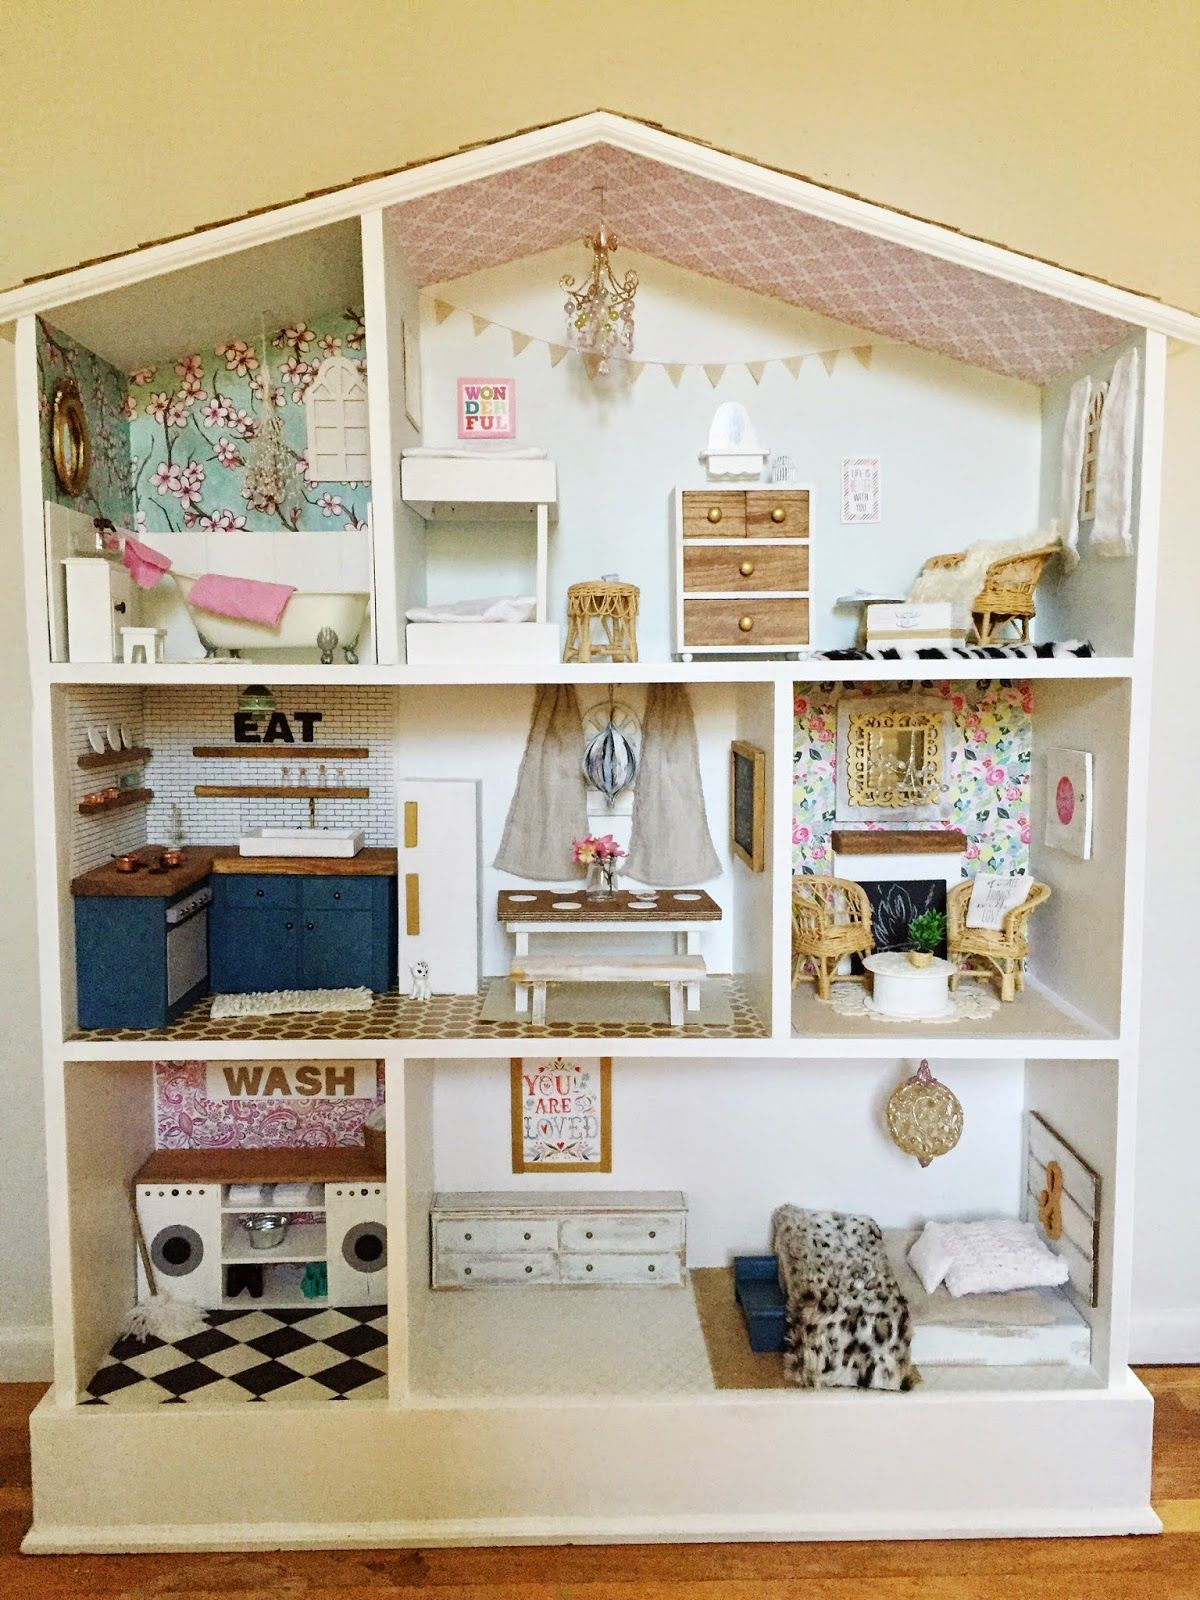 Make Your Own Barbie Furniture Property Best Diy Barbie House  Barbie House Barbie And Do It Yourself Decorating Inspiration